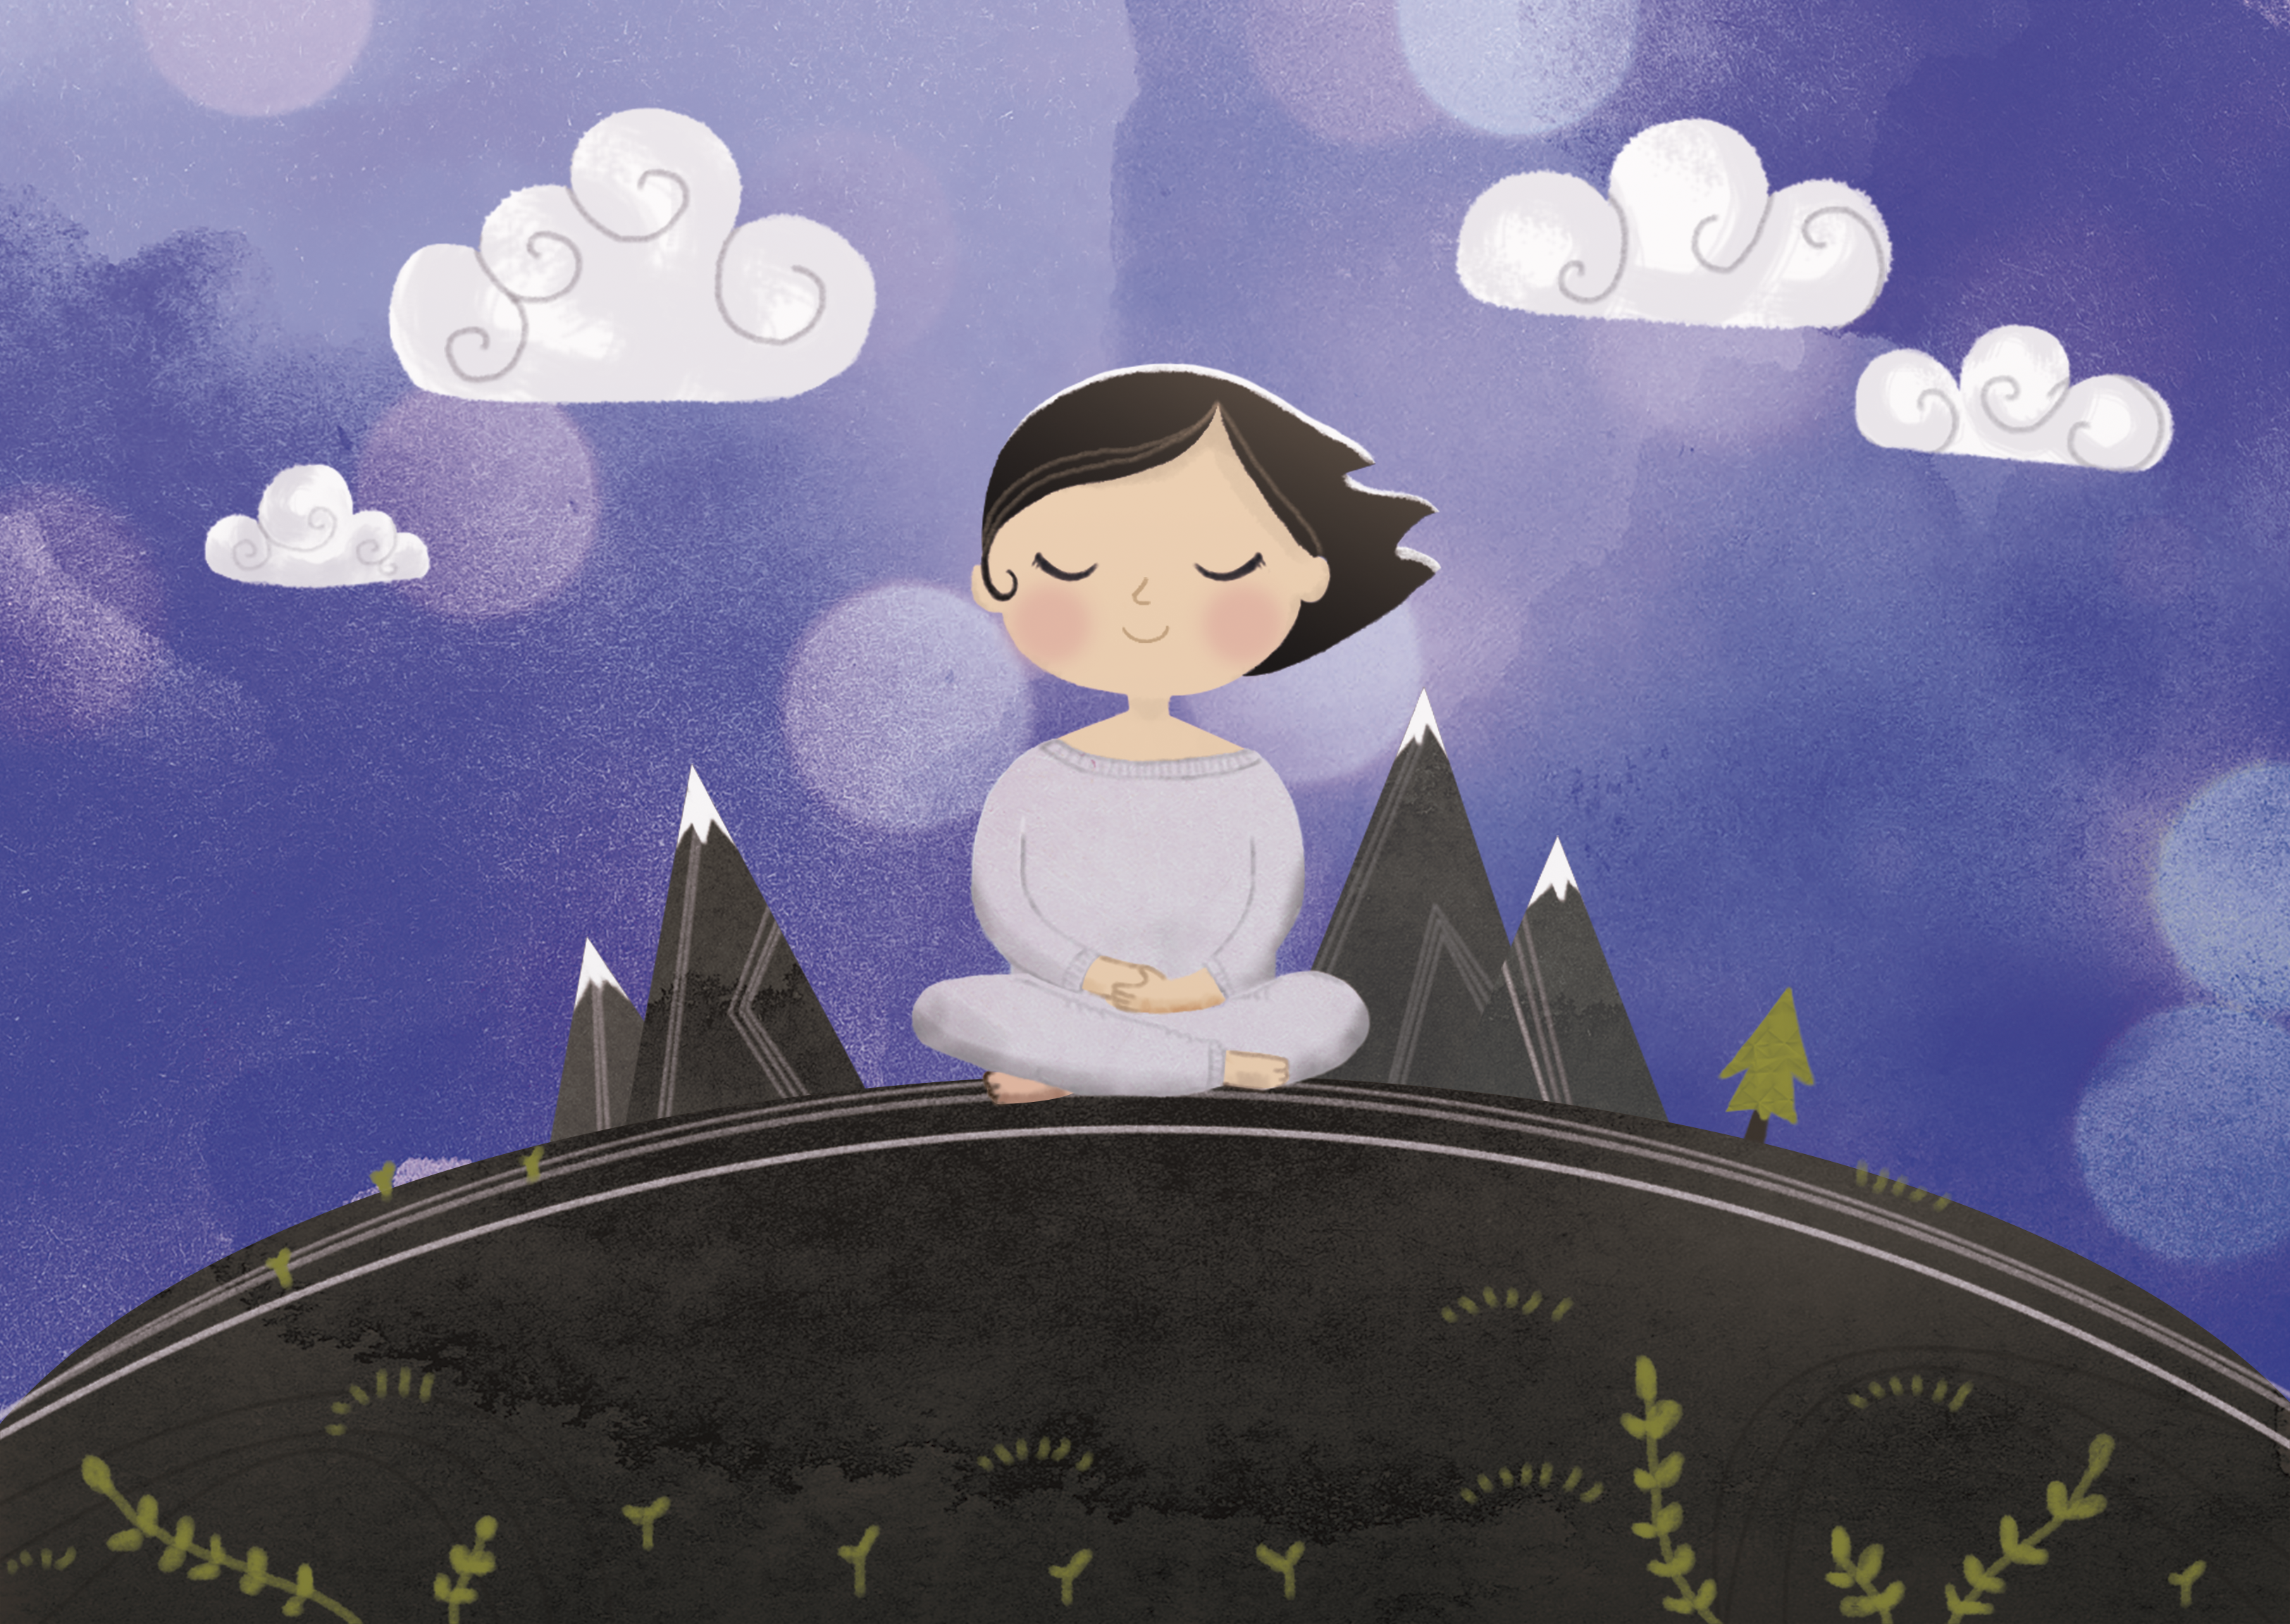 Illustration of a girl meditating